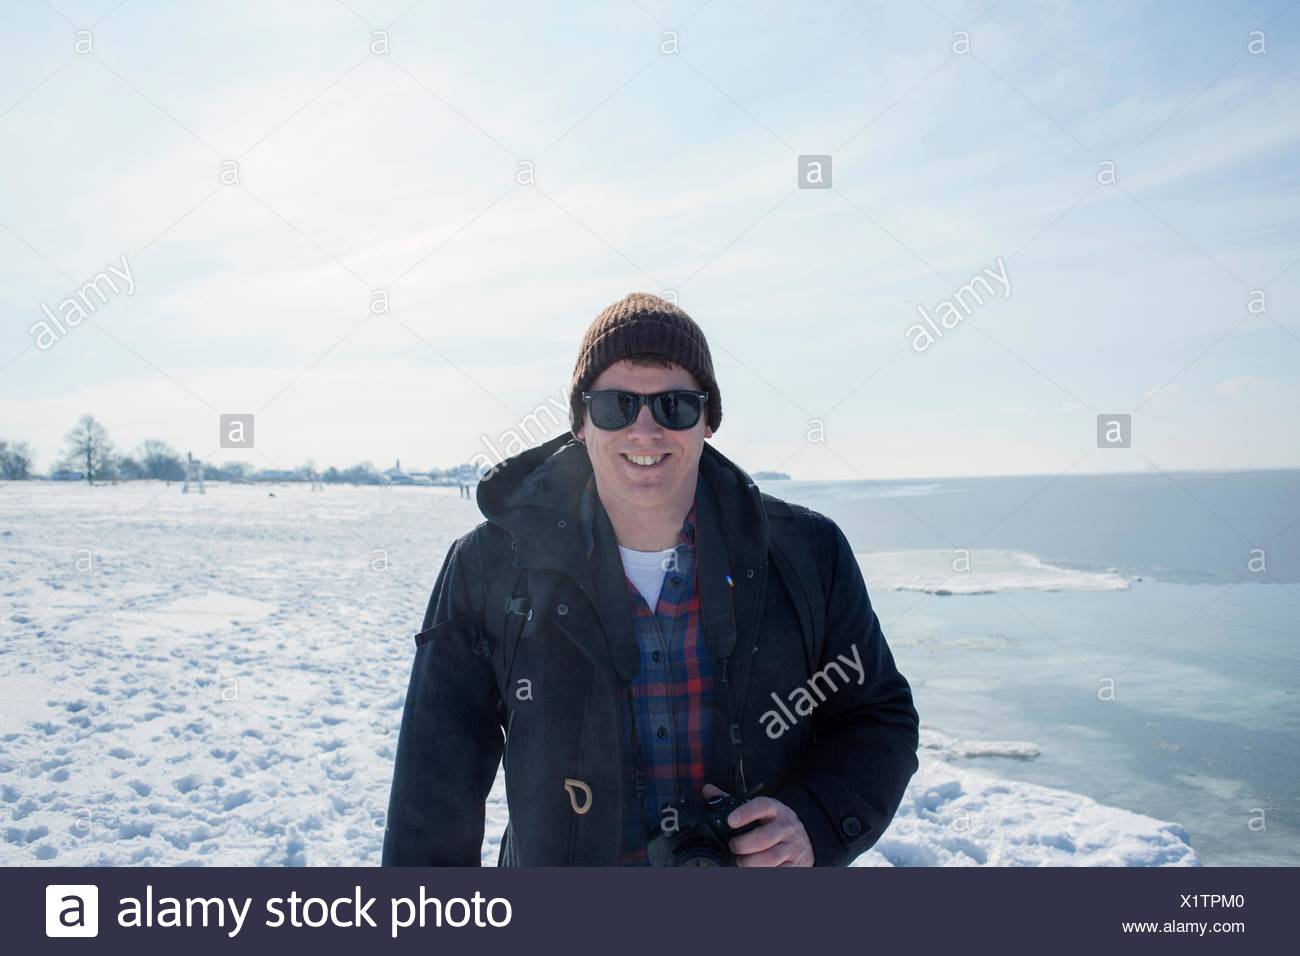 Portrait of mid adult man against snowy backdrop - Stock Image